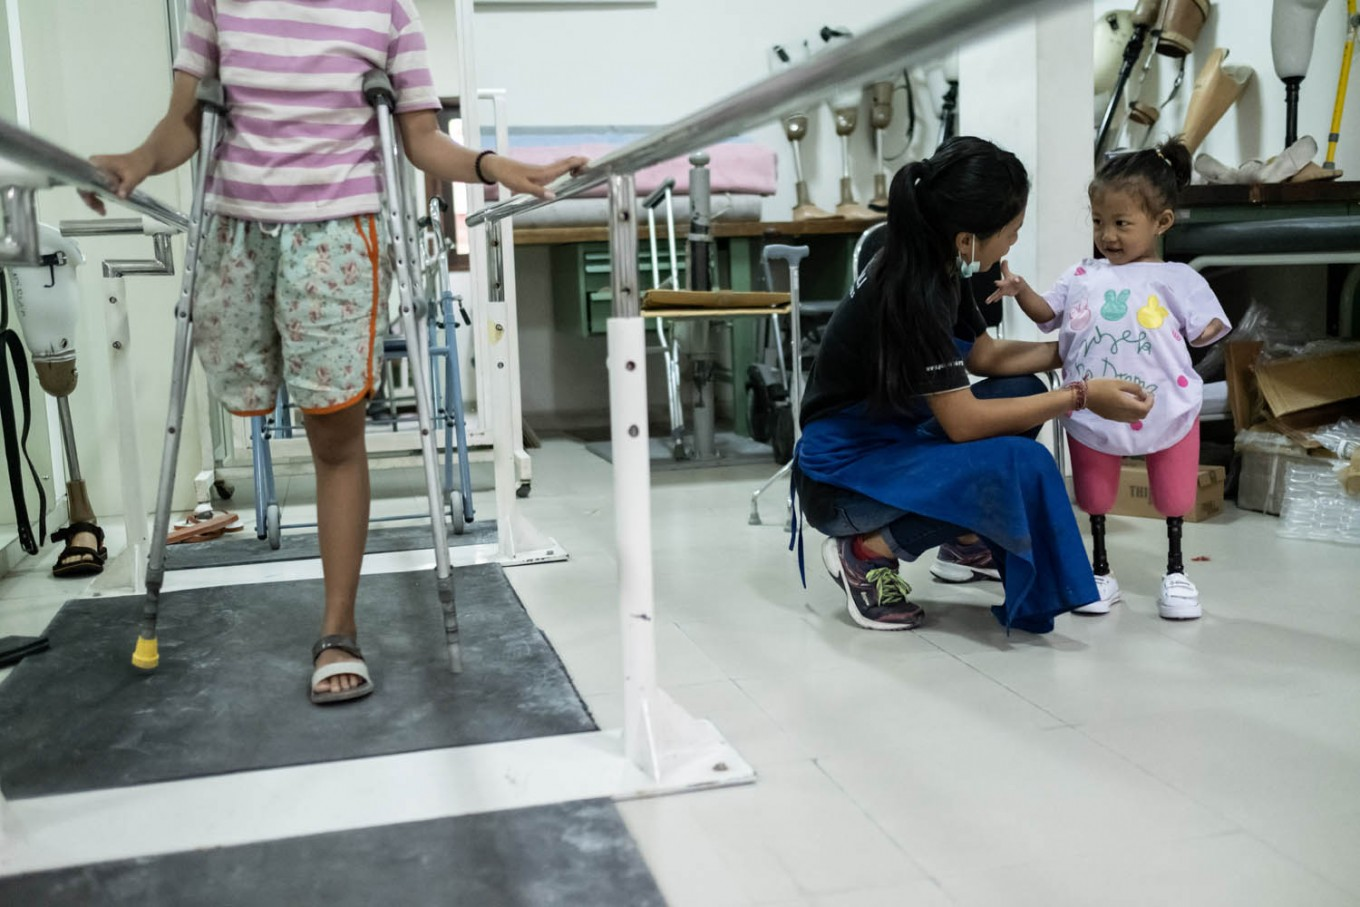 Putu chats with Safitri, while Ulil, 13, practices walking with the assistance of metal rails. Ulil lost her right leg as a toddler because of a malignant tumor. JP/Agung Parameswara